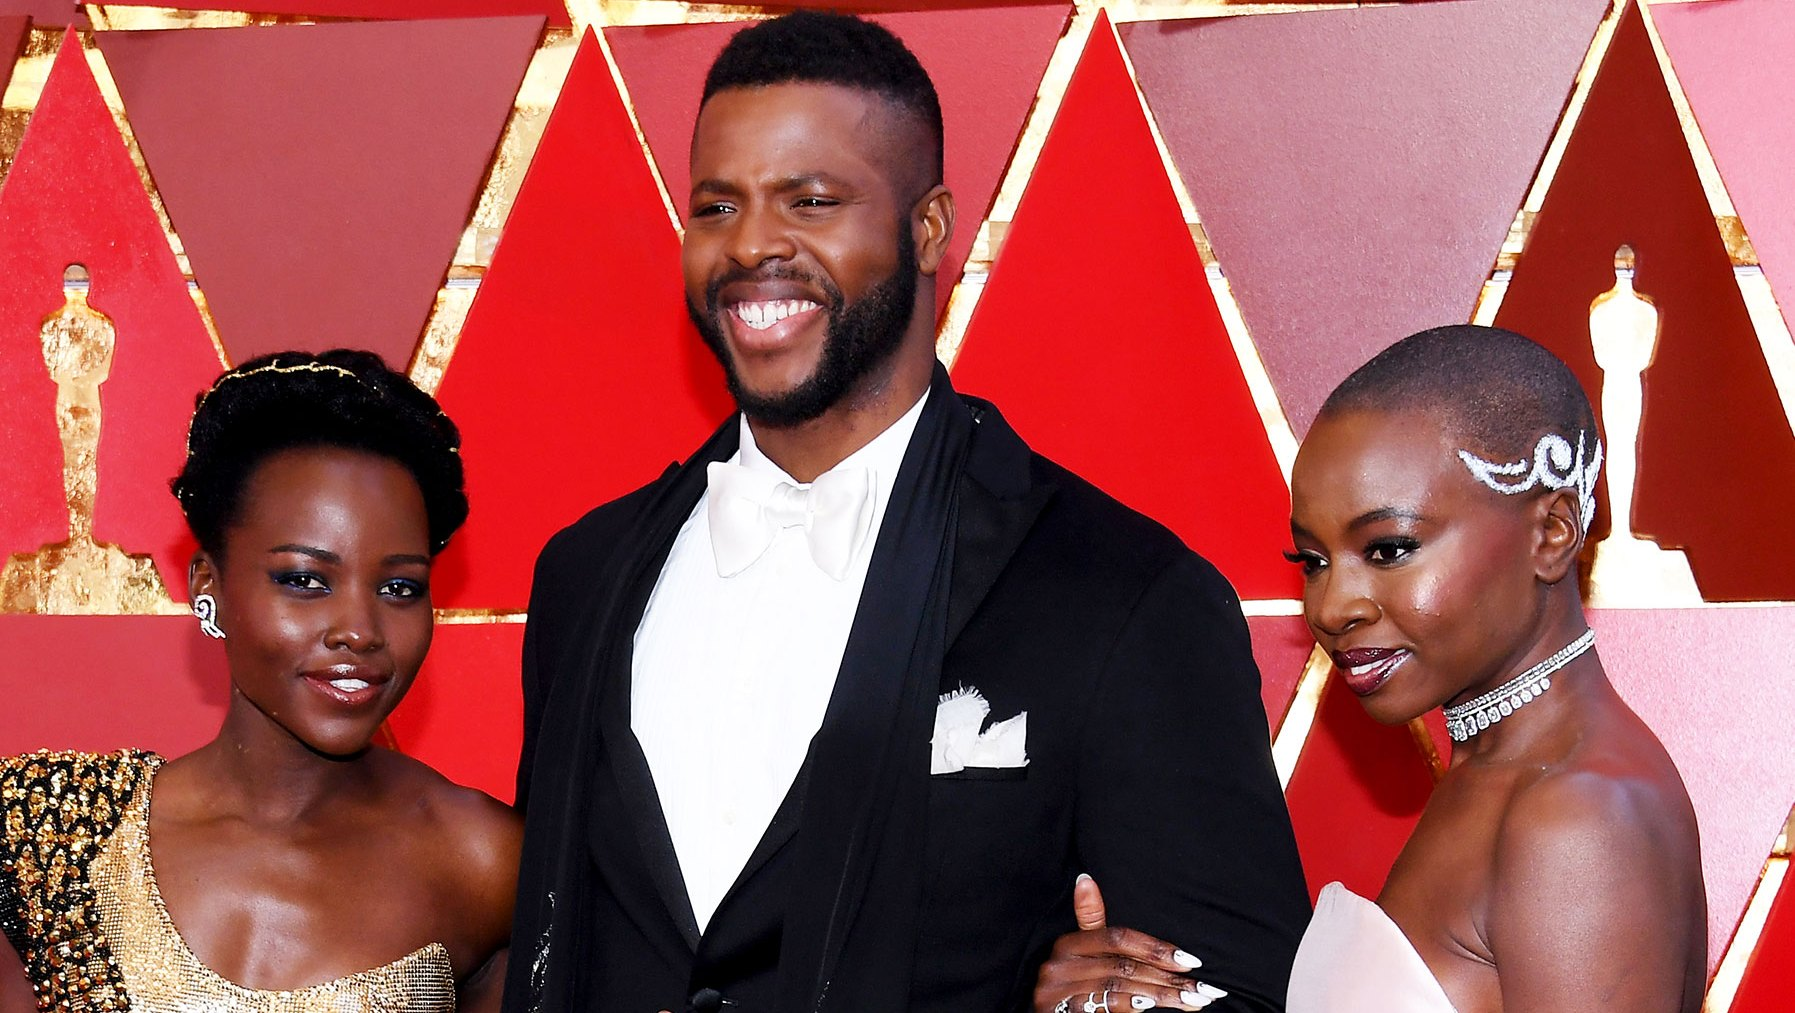 Lupita Nyong'o, Winston Duke, and Danai Gurira Lead Makeup Artist for the Academy Awards, Bruce Grayson, Shares His Number One Product and Other Behind-the-Scenes Se